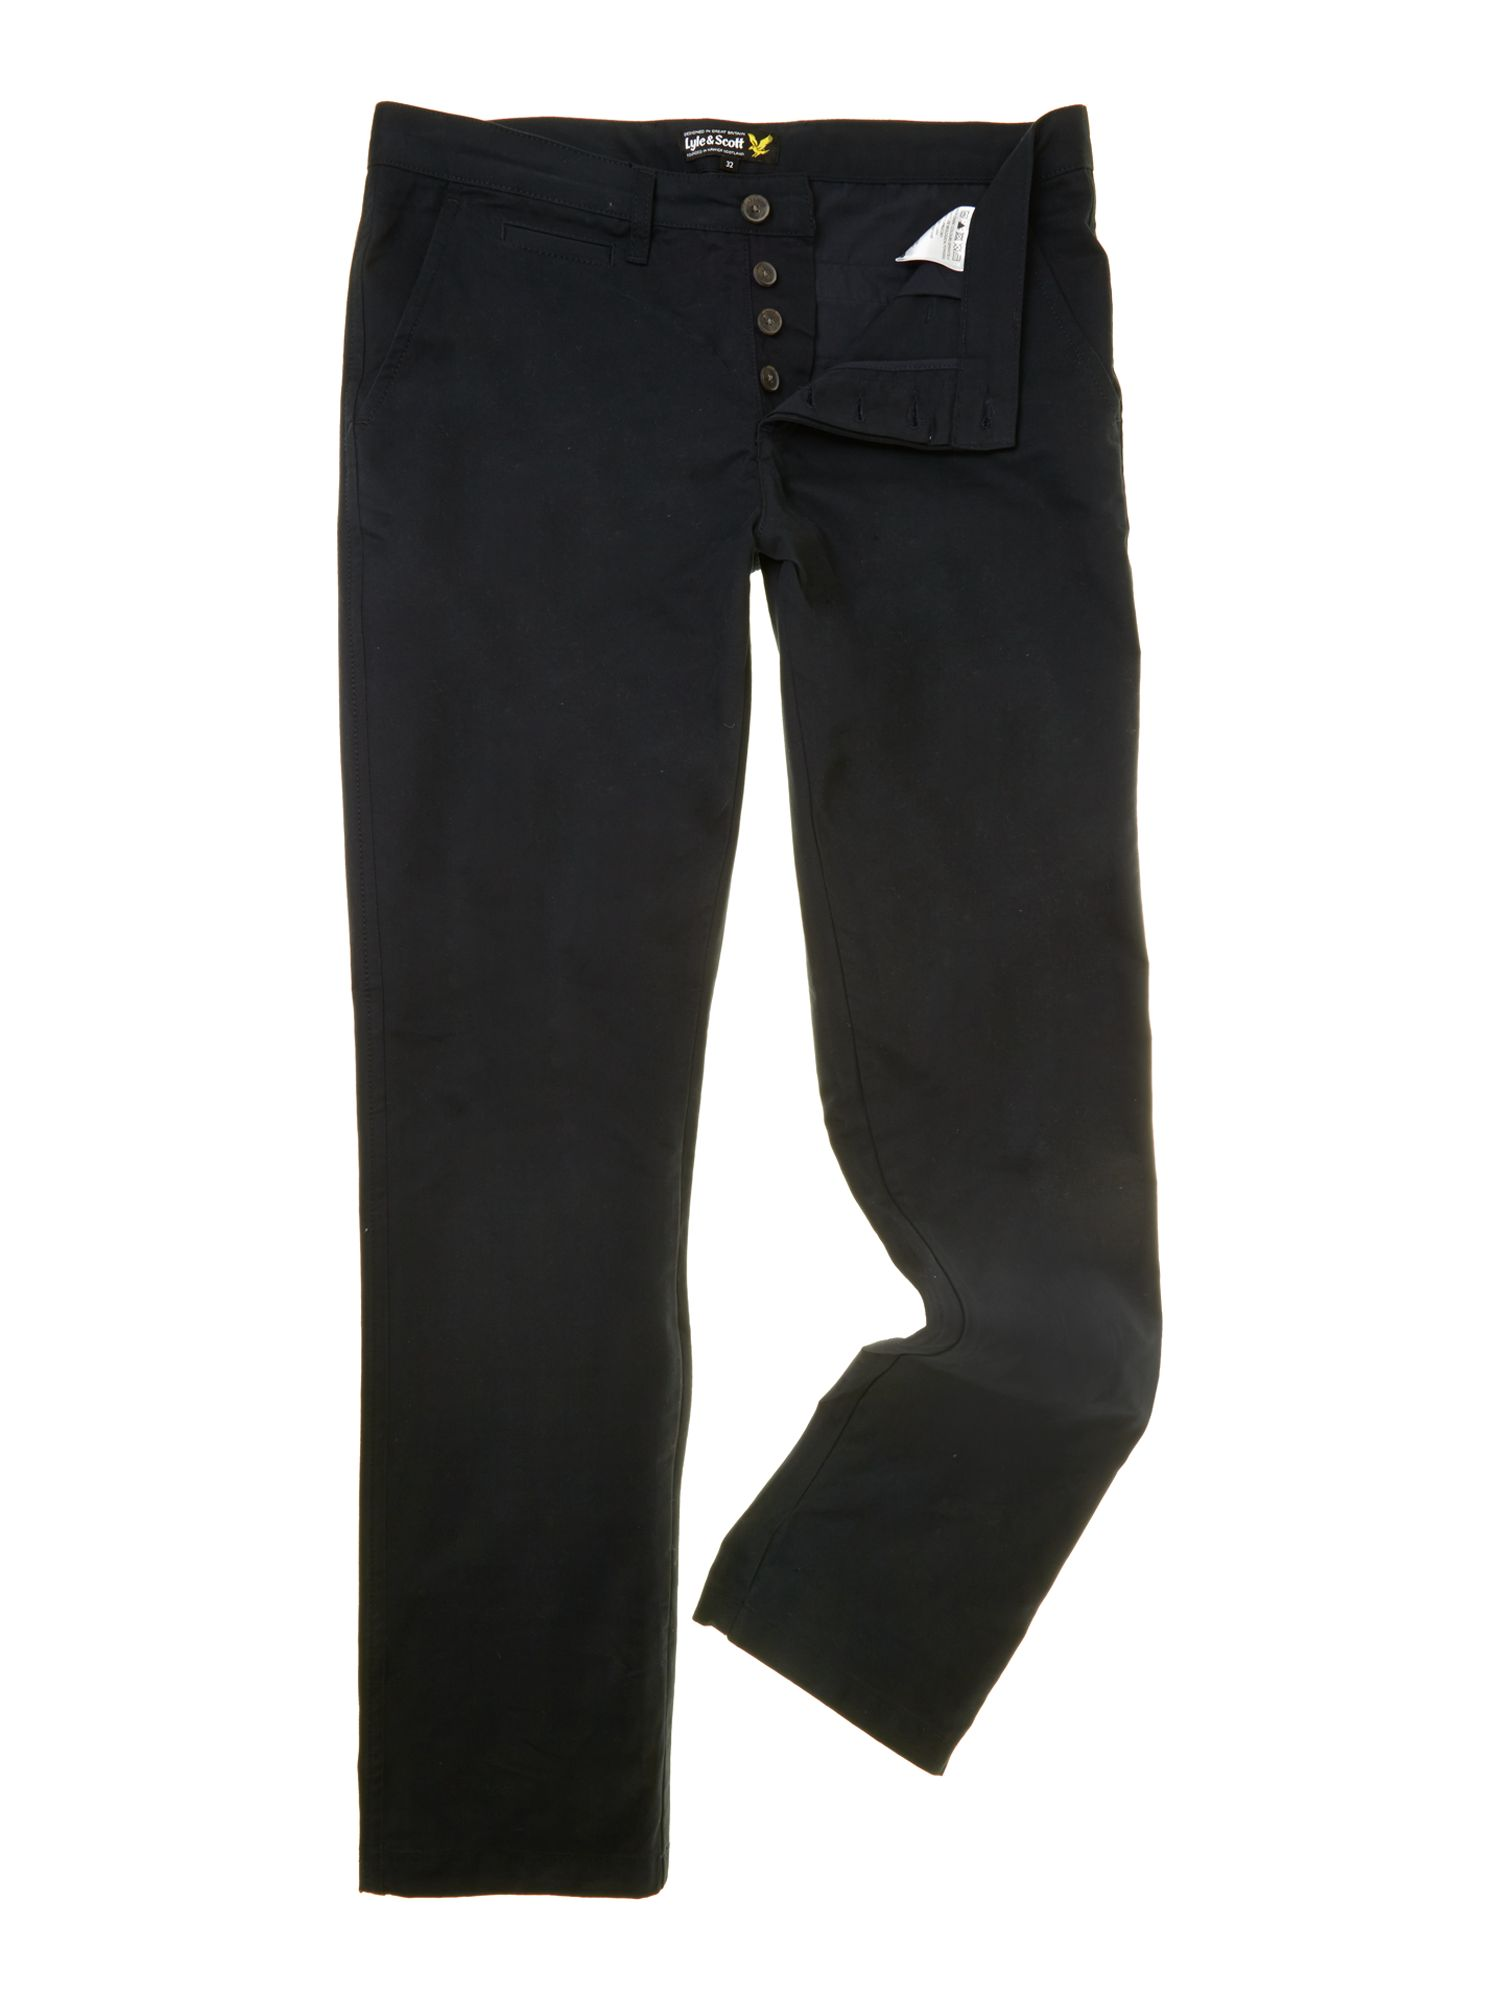 Regular fit chino trouser